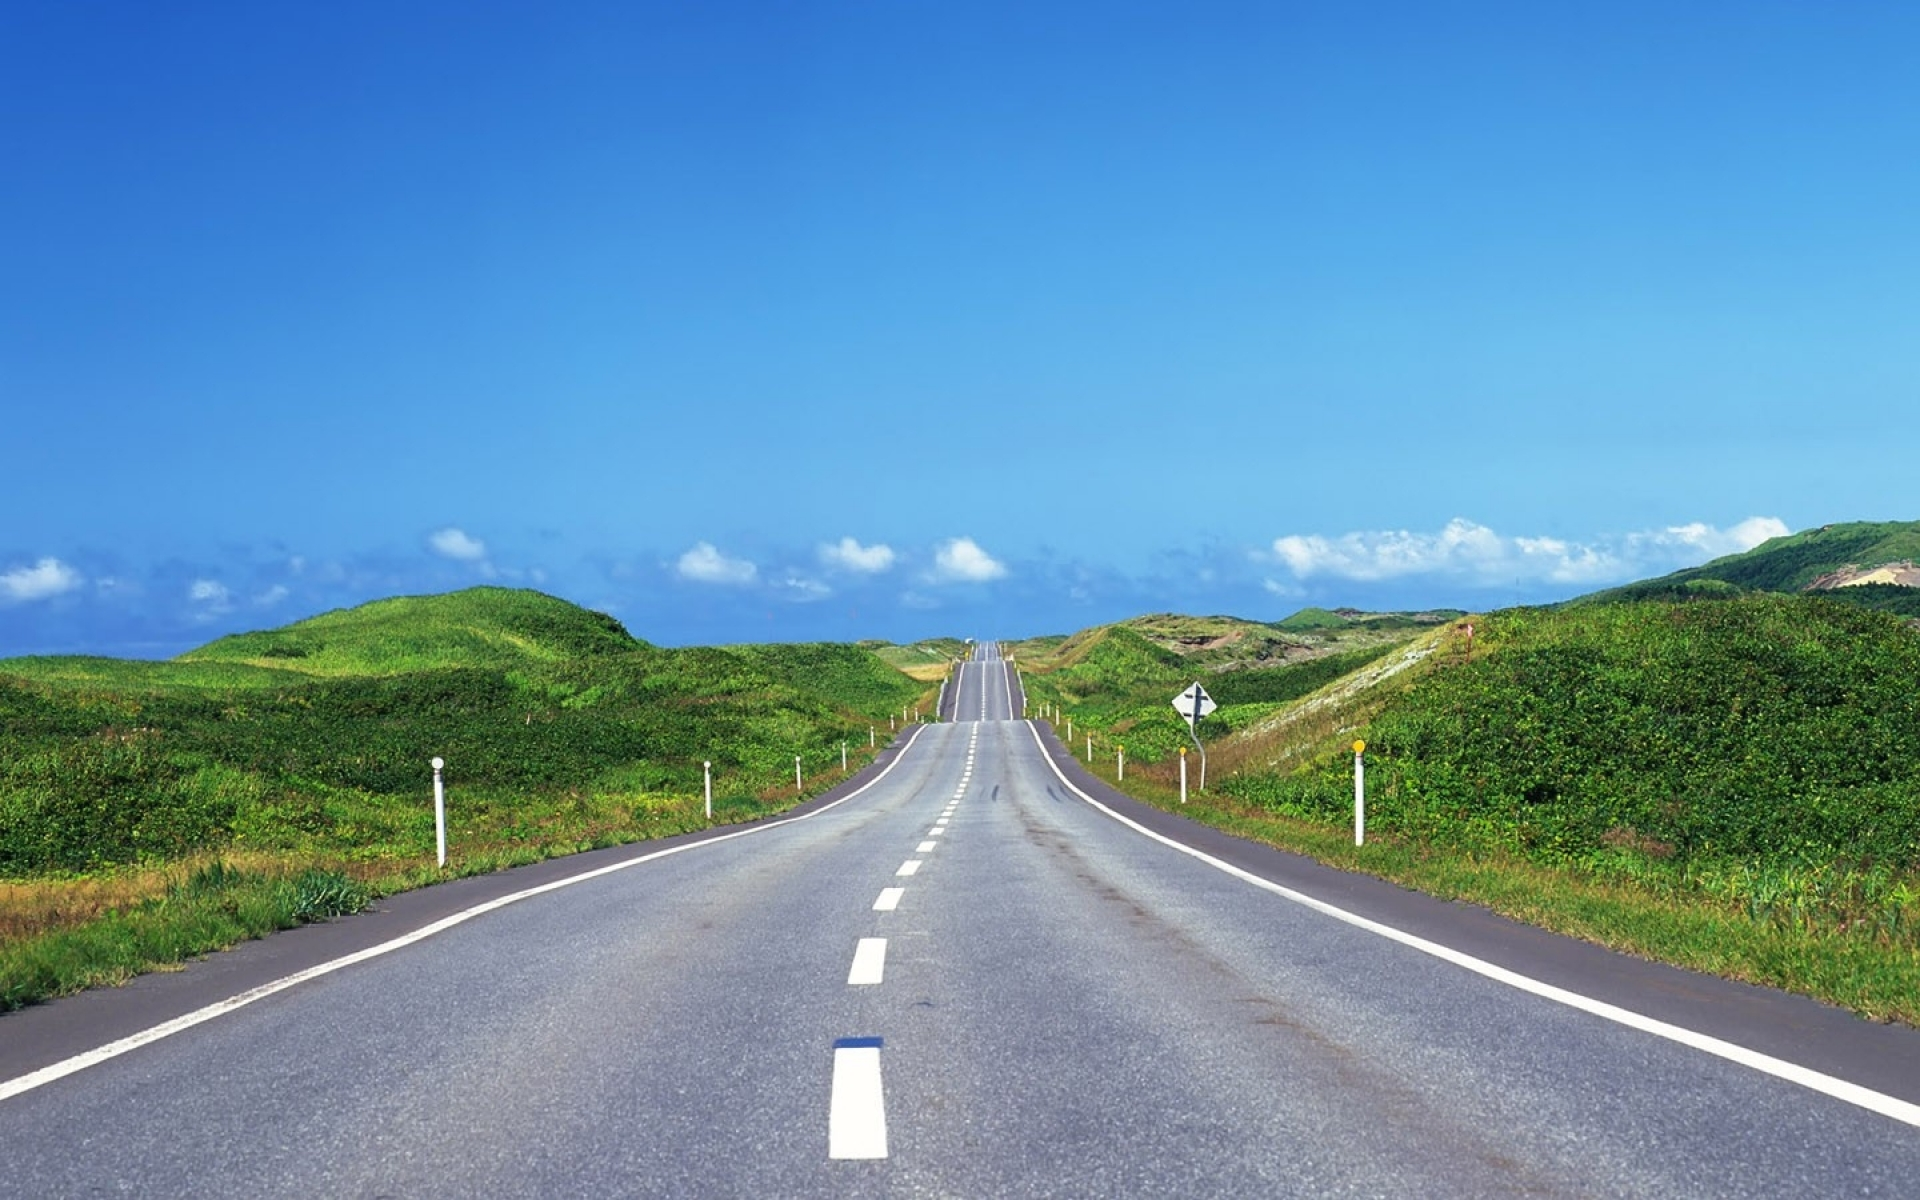 Hilly Road & Grass Green Natur wallpapers | Hilly Road ...